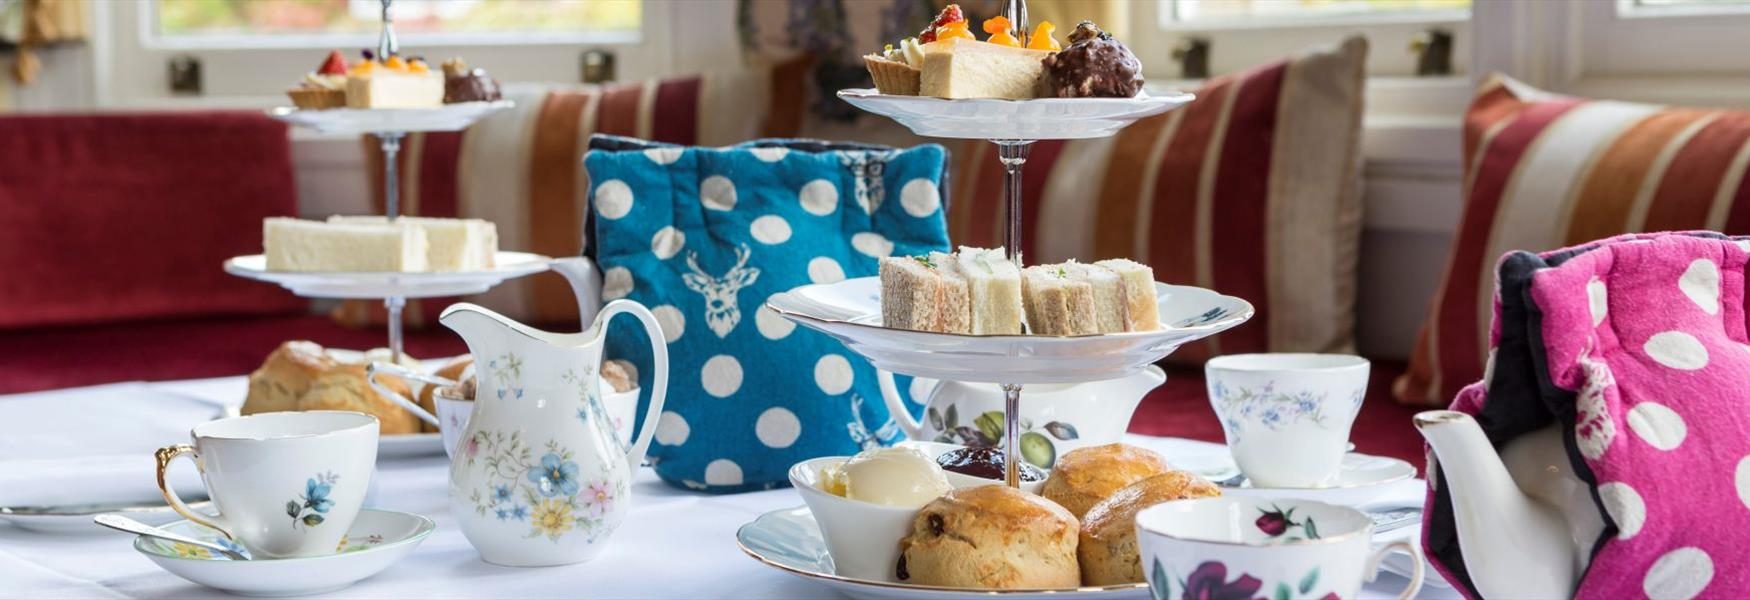 Indulge in an afternoon tea at The Oakley Court